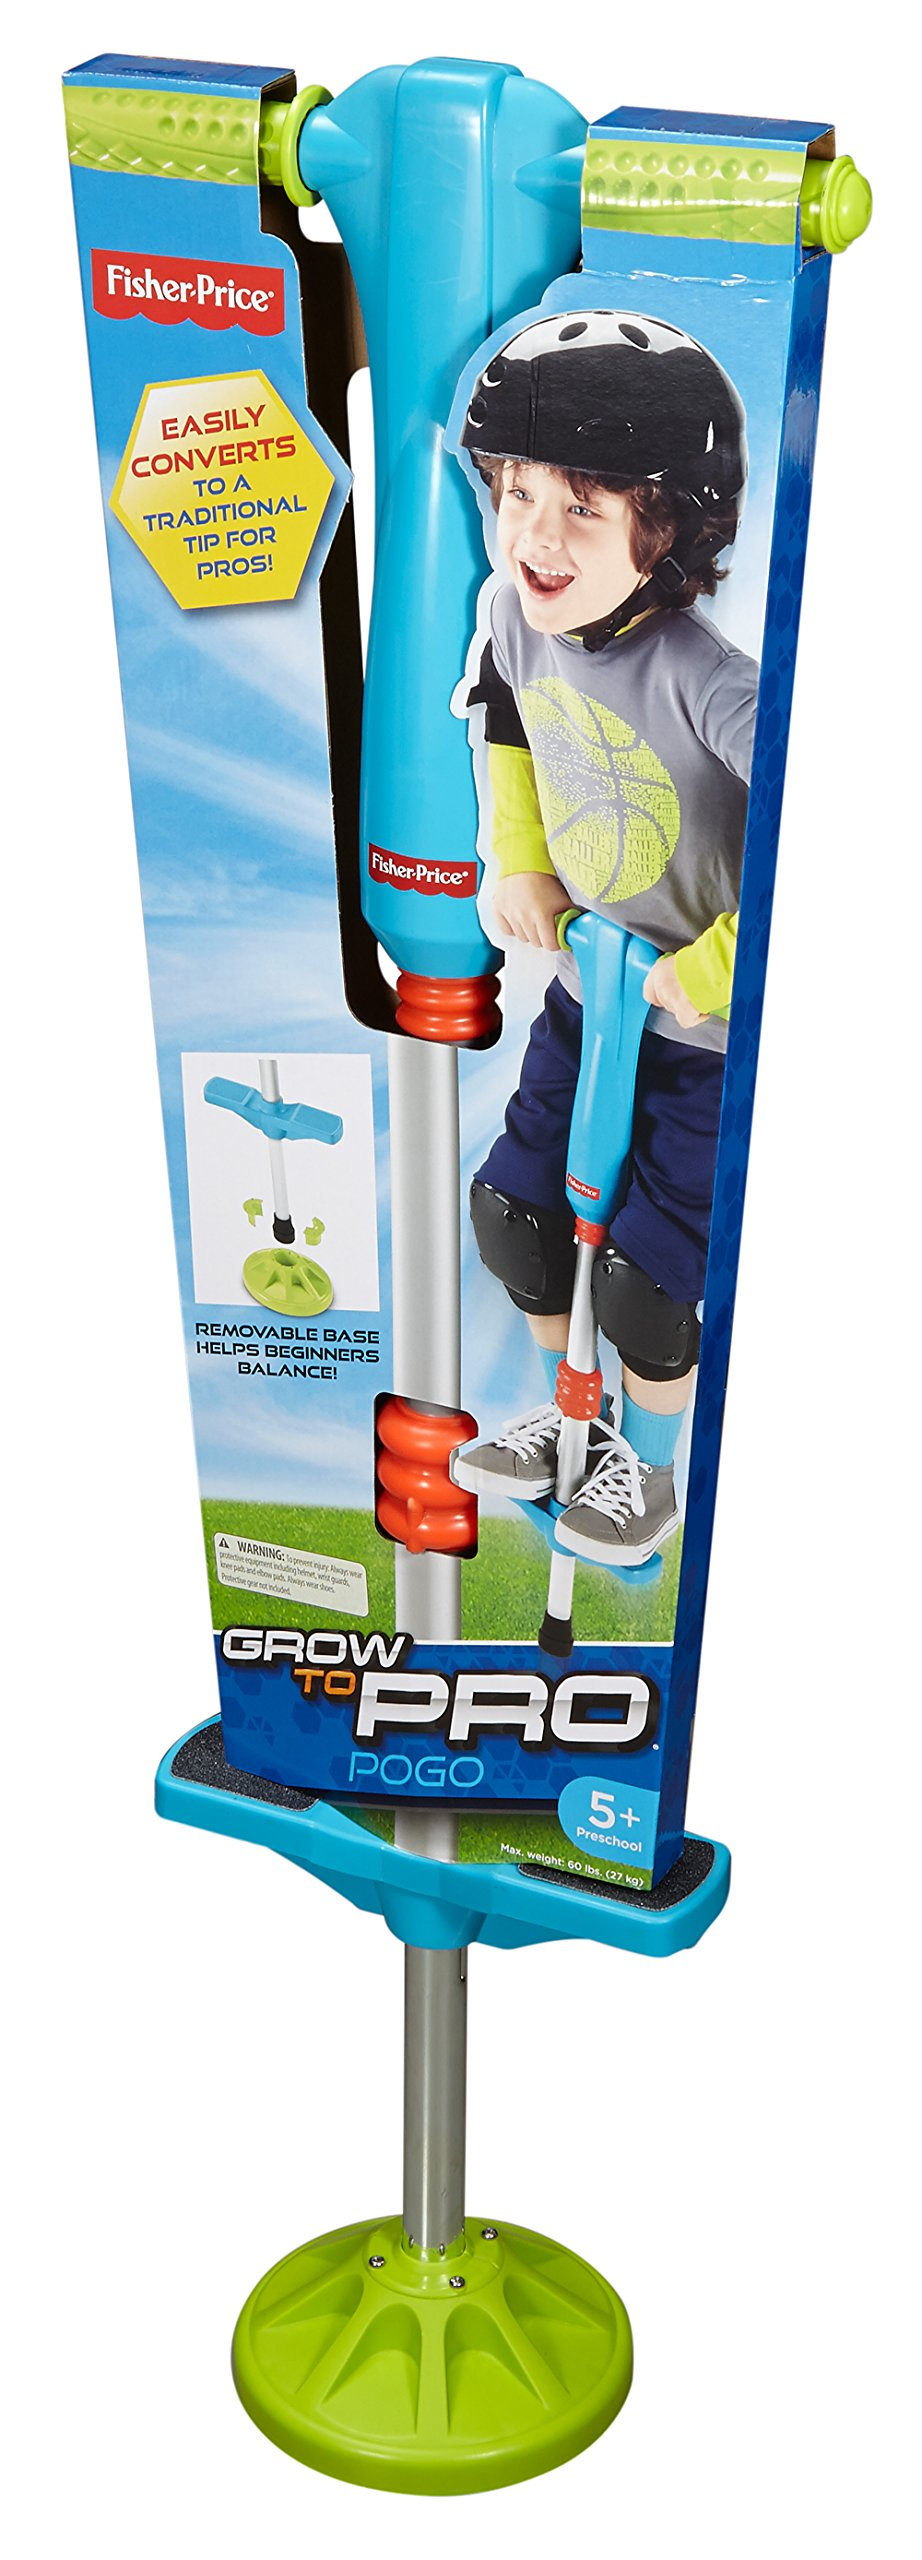 Fisher-Price Grow-to-Pro 3-in-1 Pogo by Fisher-Price (Image #12)